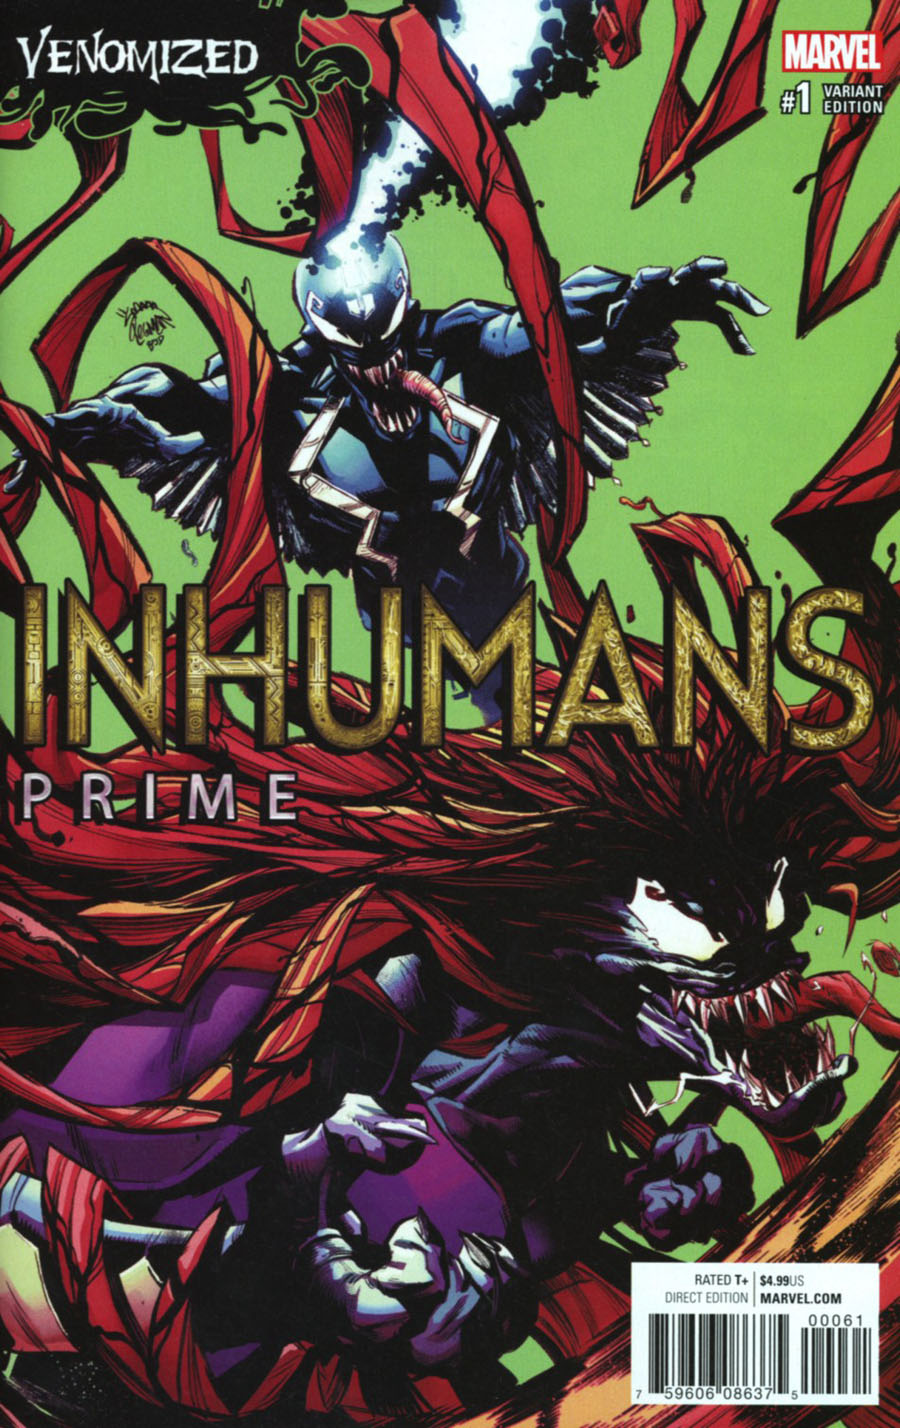 Inhumans Prime #1 Cover C Variant Ryan Stegman Venomized Cover (Resurrxion Tie-In)